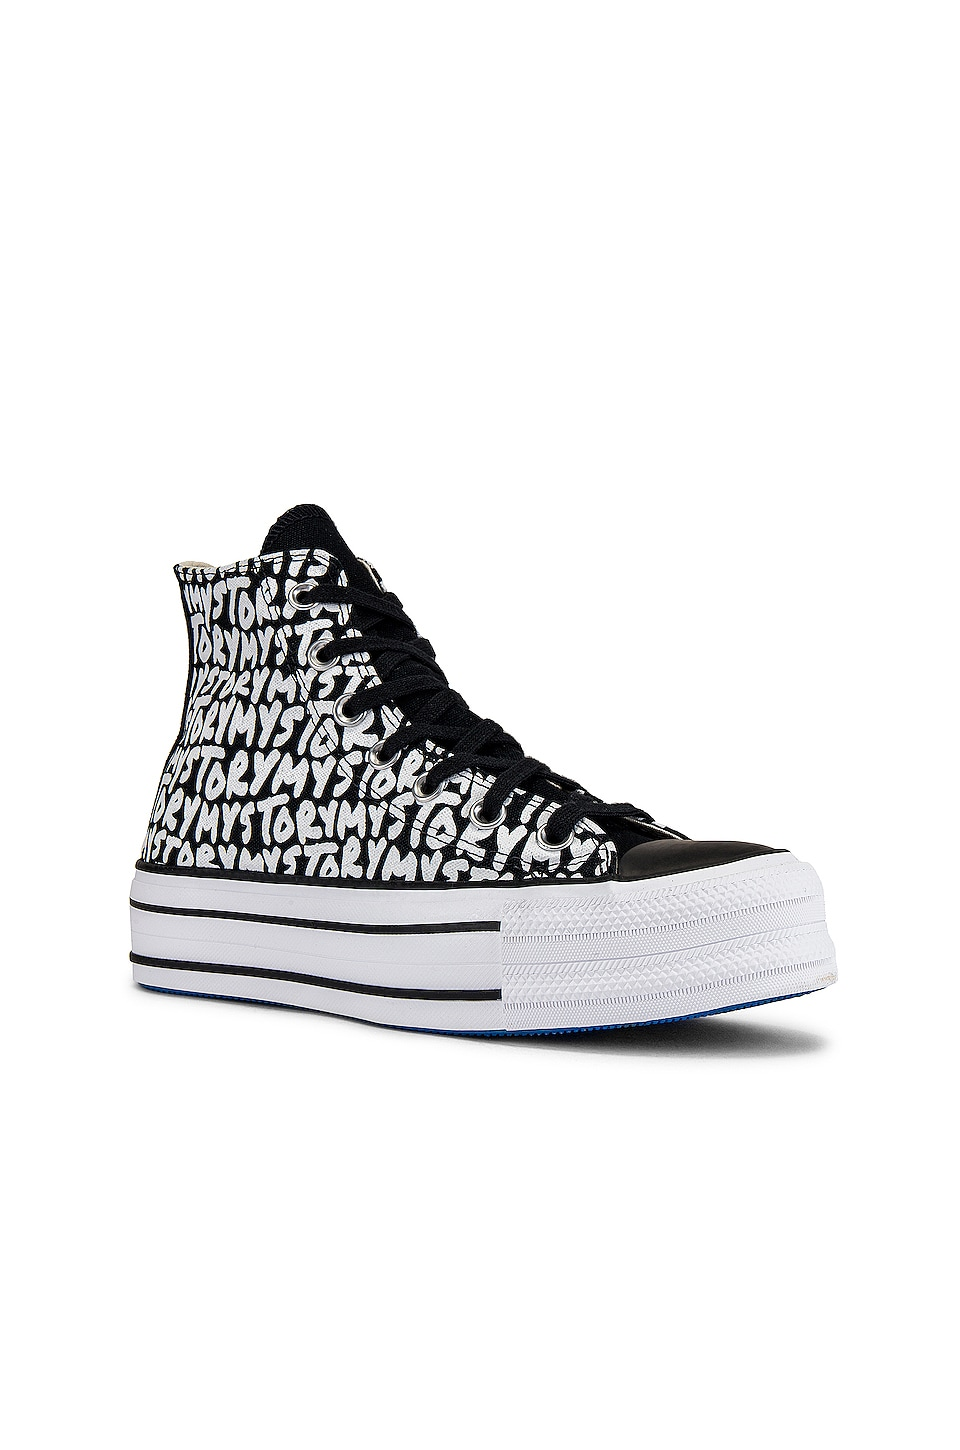 CONVERSE Canvases CHUCK TAYLOR ALL STAR PLATFORM MY STORY SNEAKER